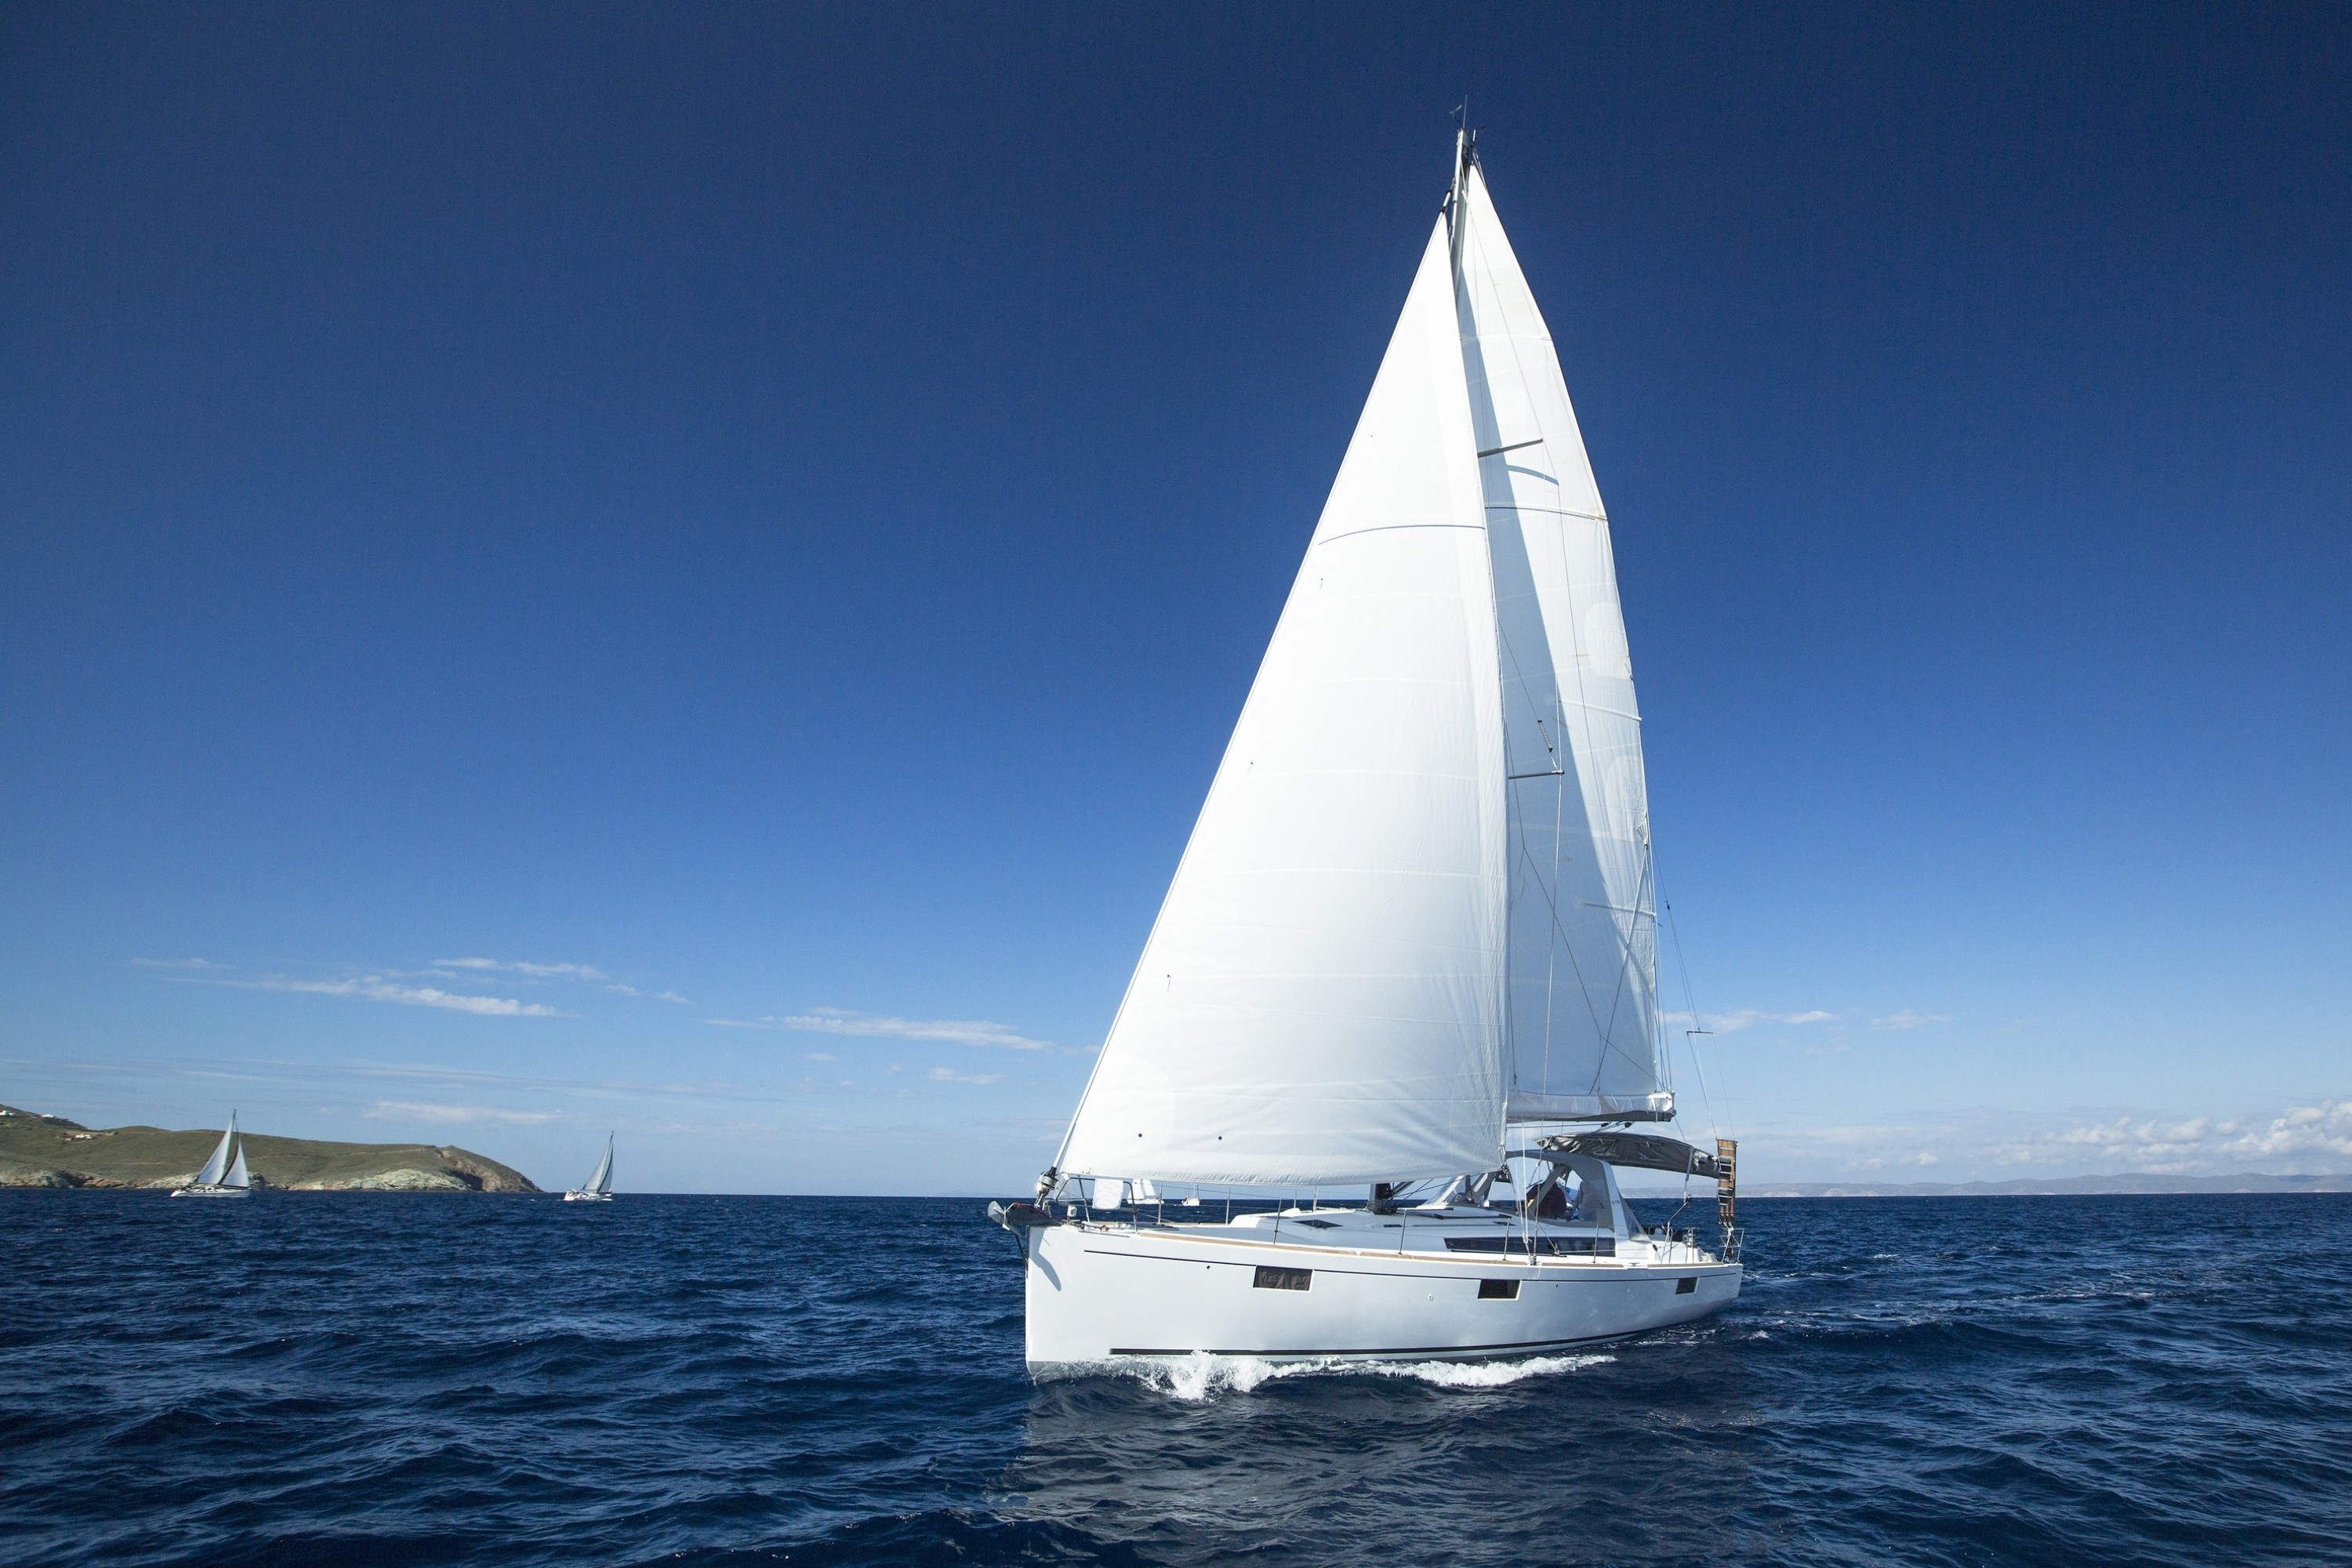 hungry for sailboat wallpaper - photo #11